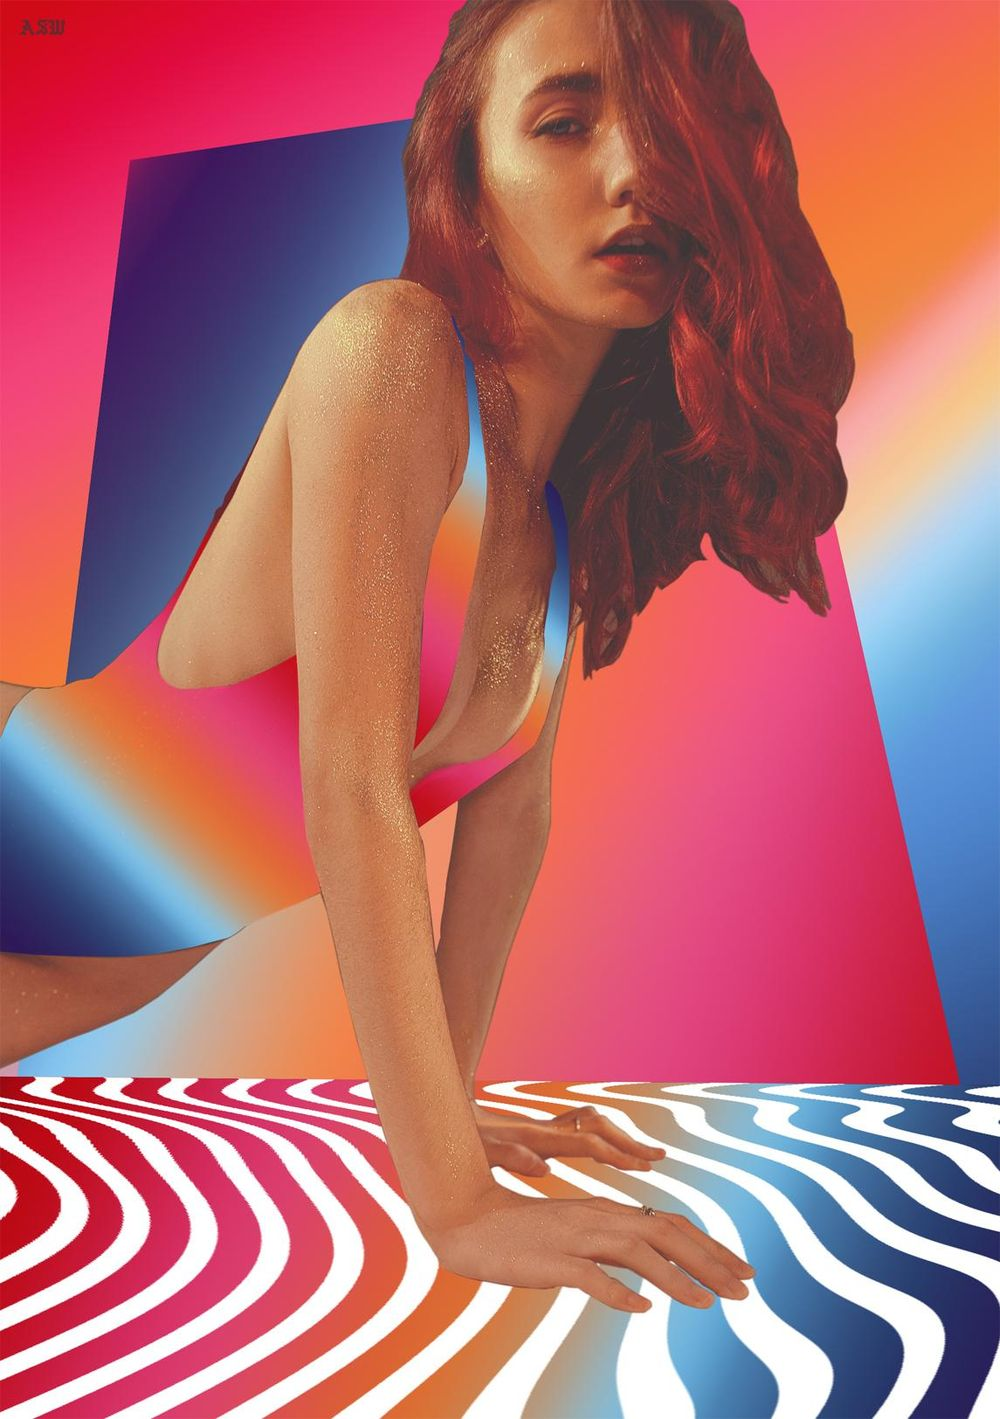 Gradient Girl - image 1 - student project